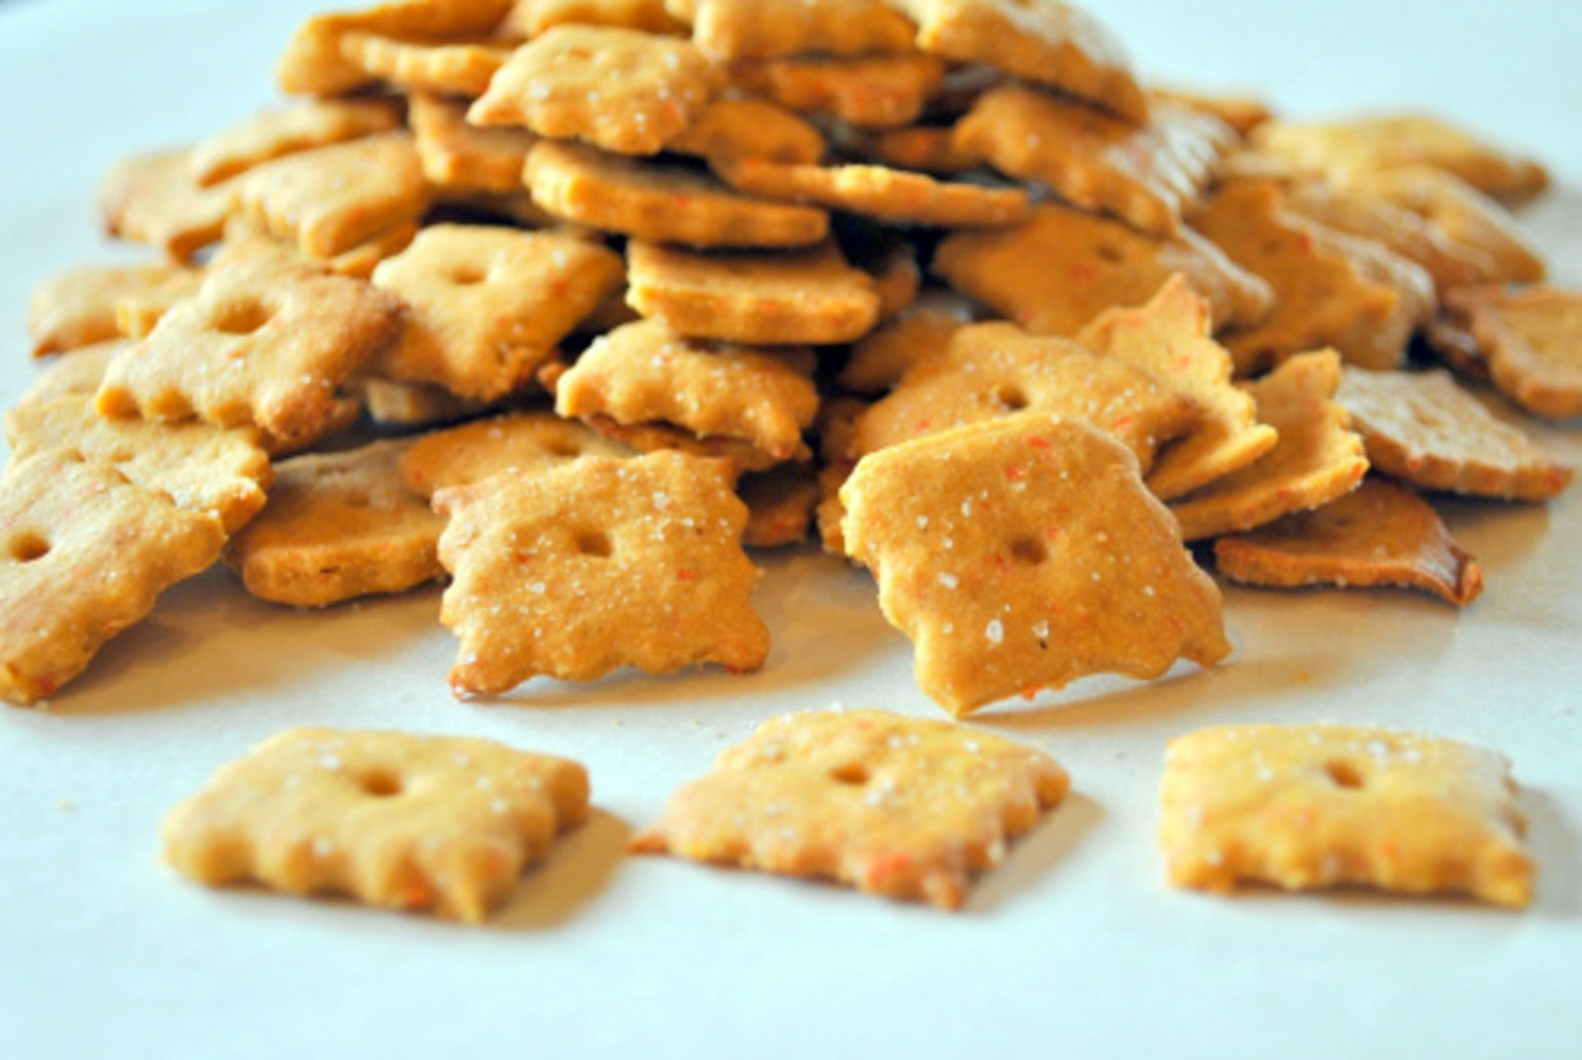 How to make your own healthy crunchy snack foods one green planet solutioingenieria Choice Image